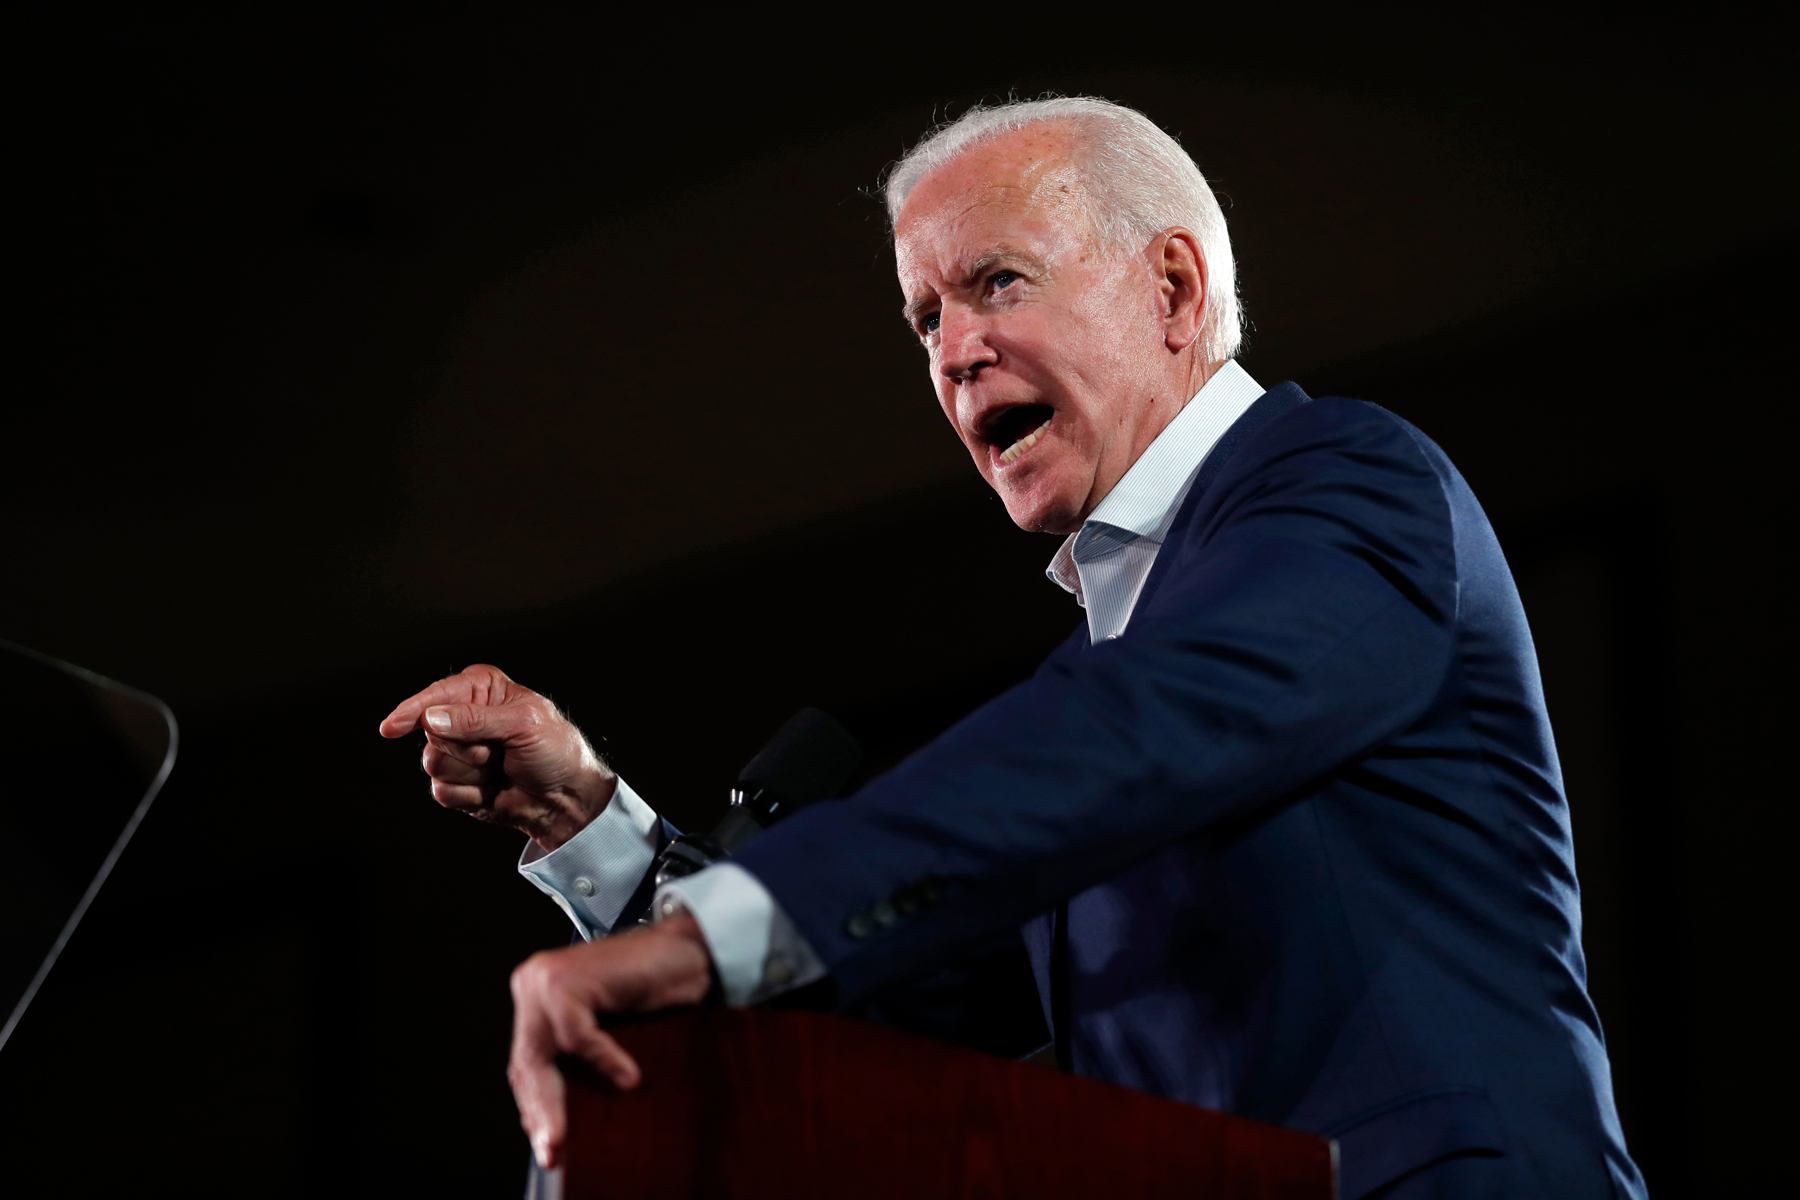 Why Weed Advocates Aren't Happy About Joe Biden's Candidacy